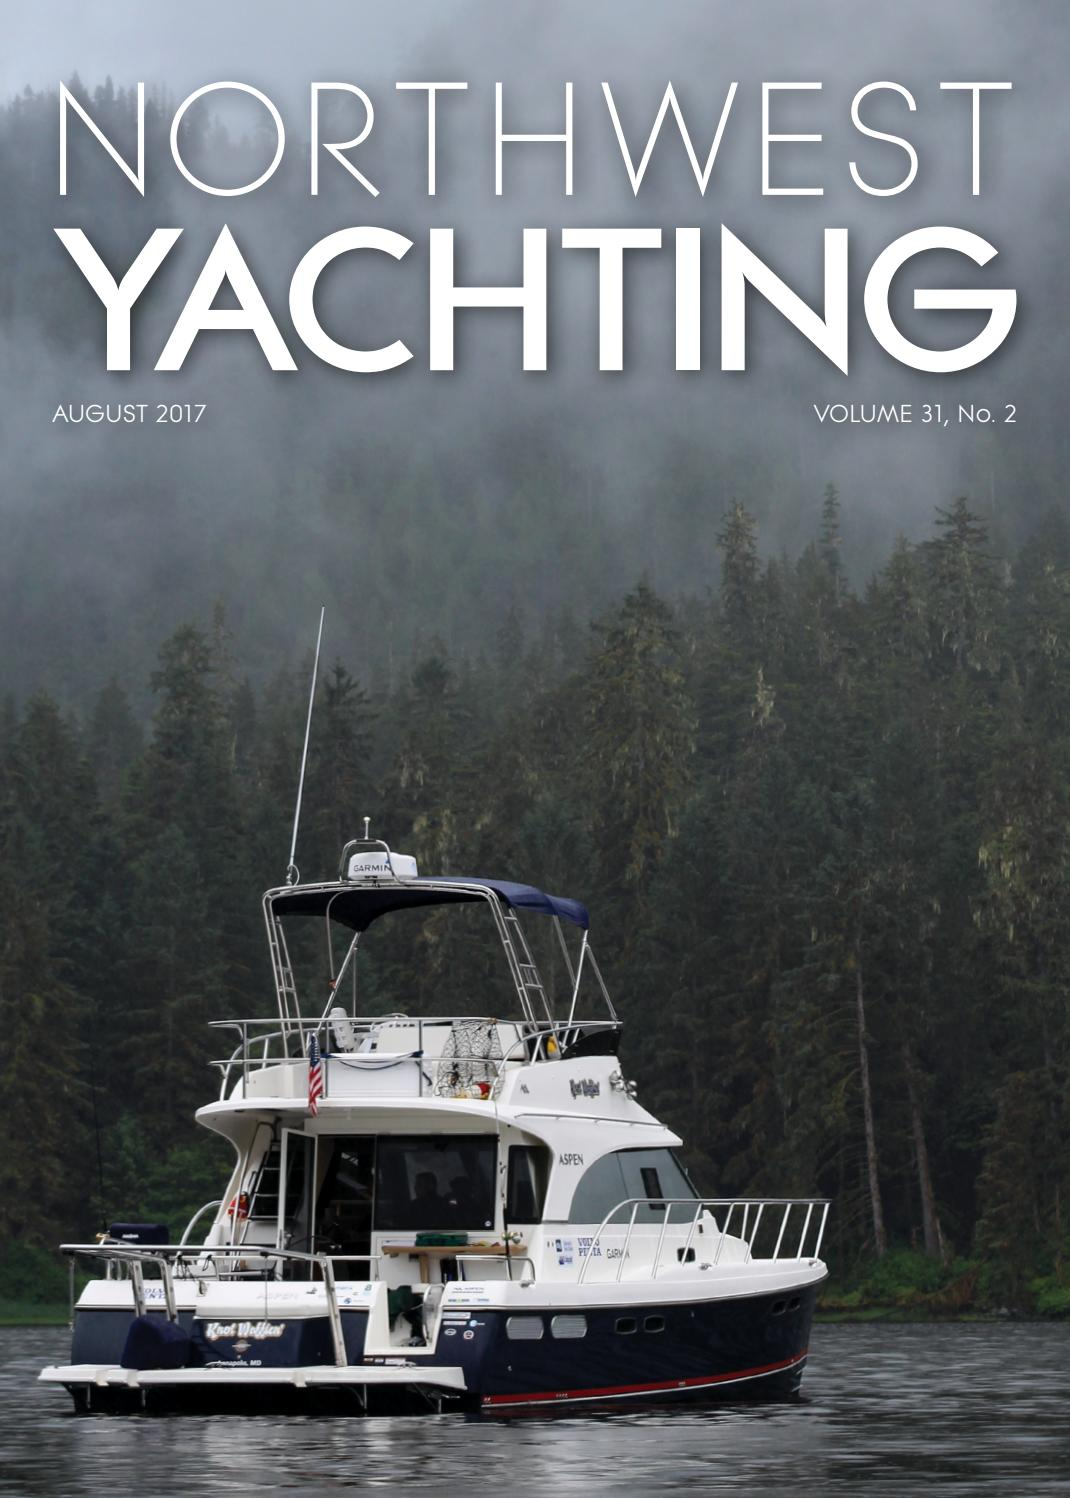 Northwest Yachting August 2017 By Issuu Delta Faucet 132900 Parts List And Diagram Ereplacementpartscom